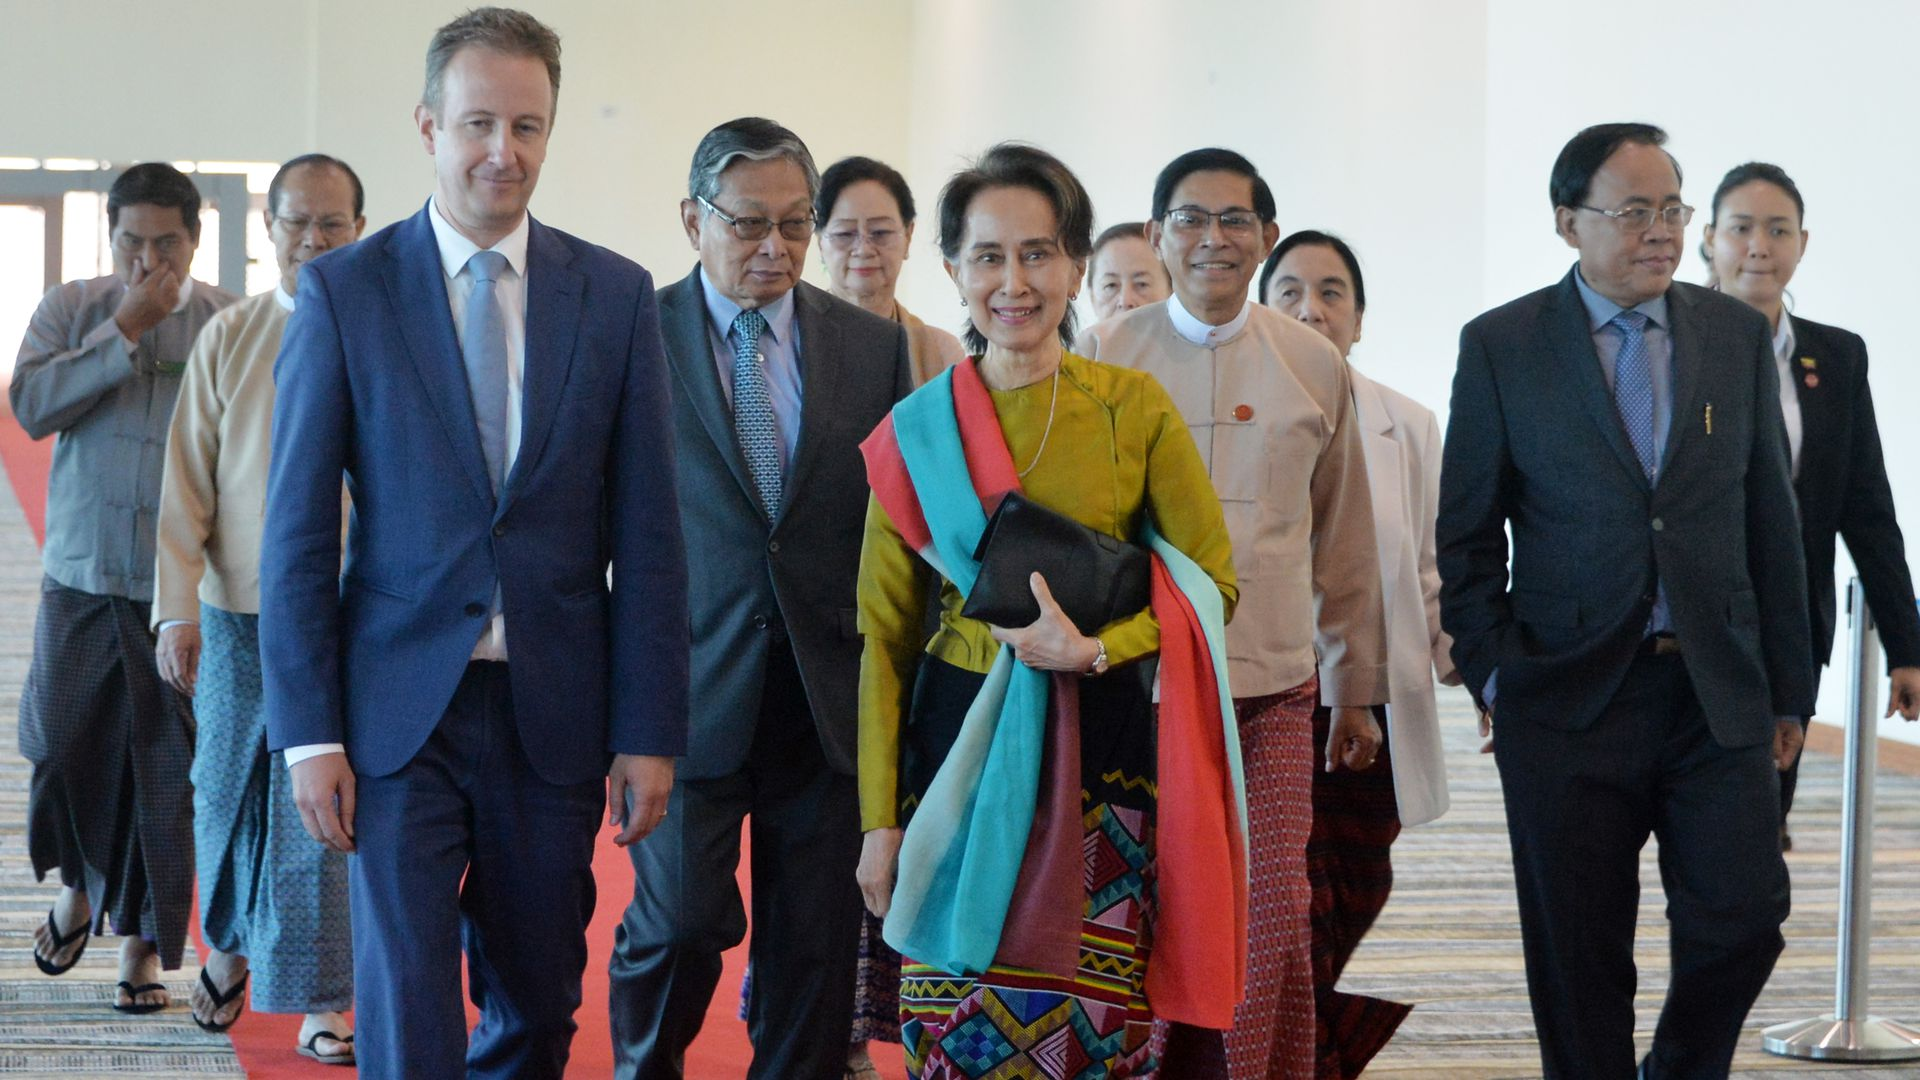 Aung San Suu Kyi, flanked by officials, leaving the nation's capital, Naypyidaw